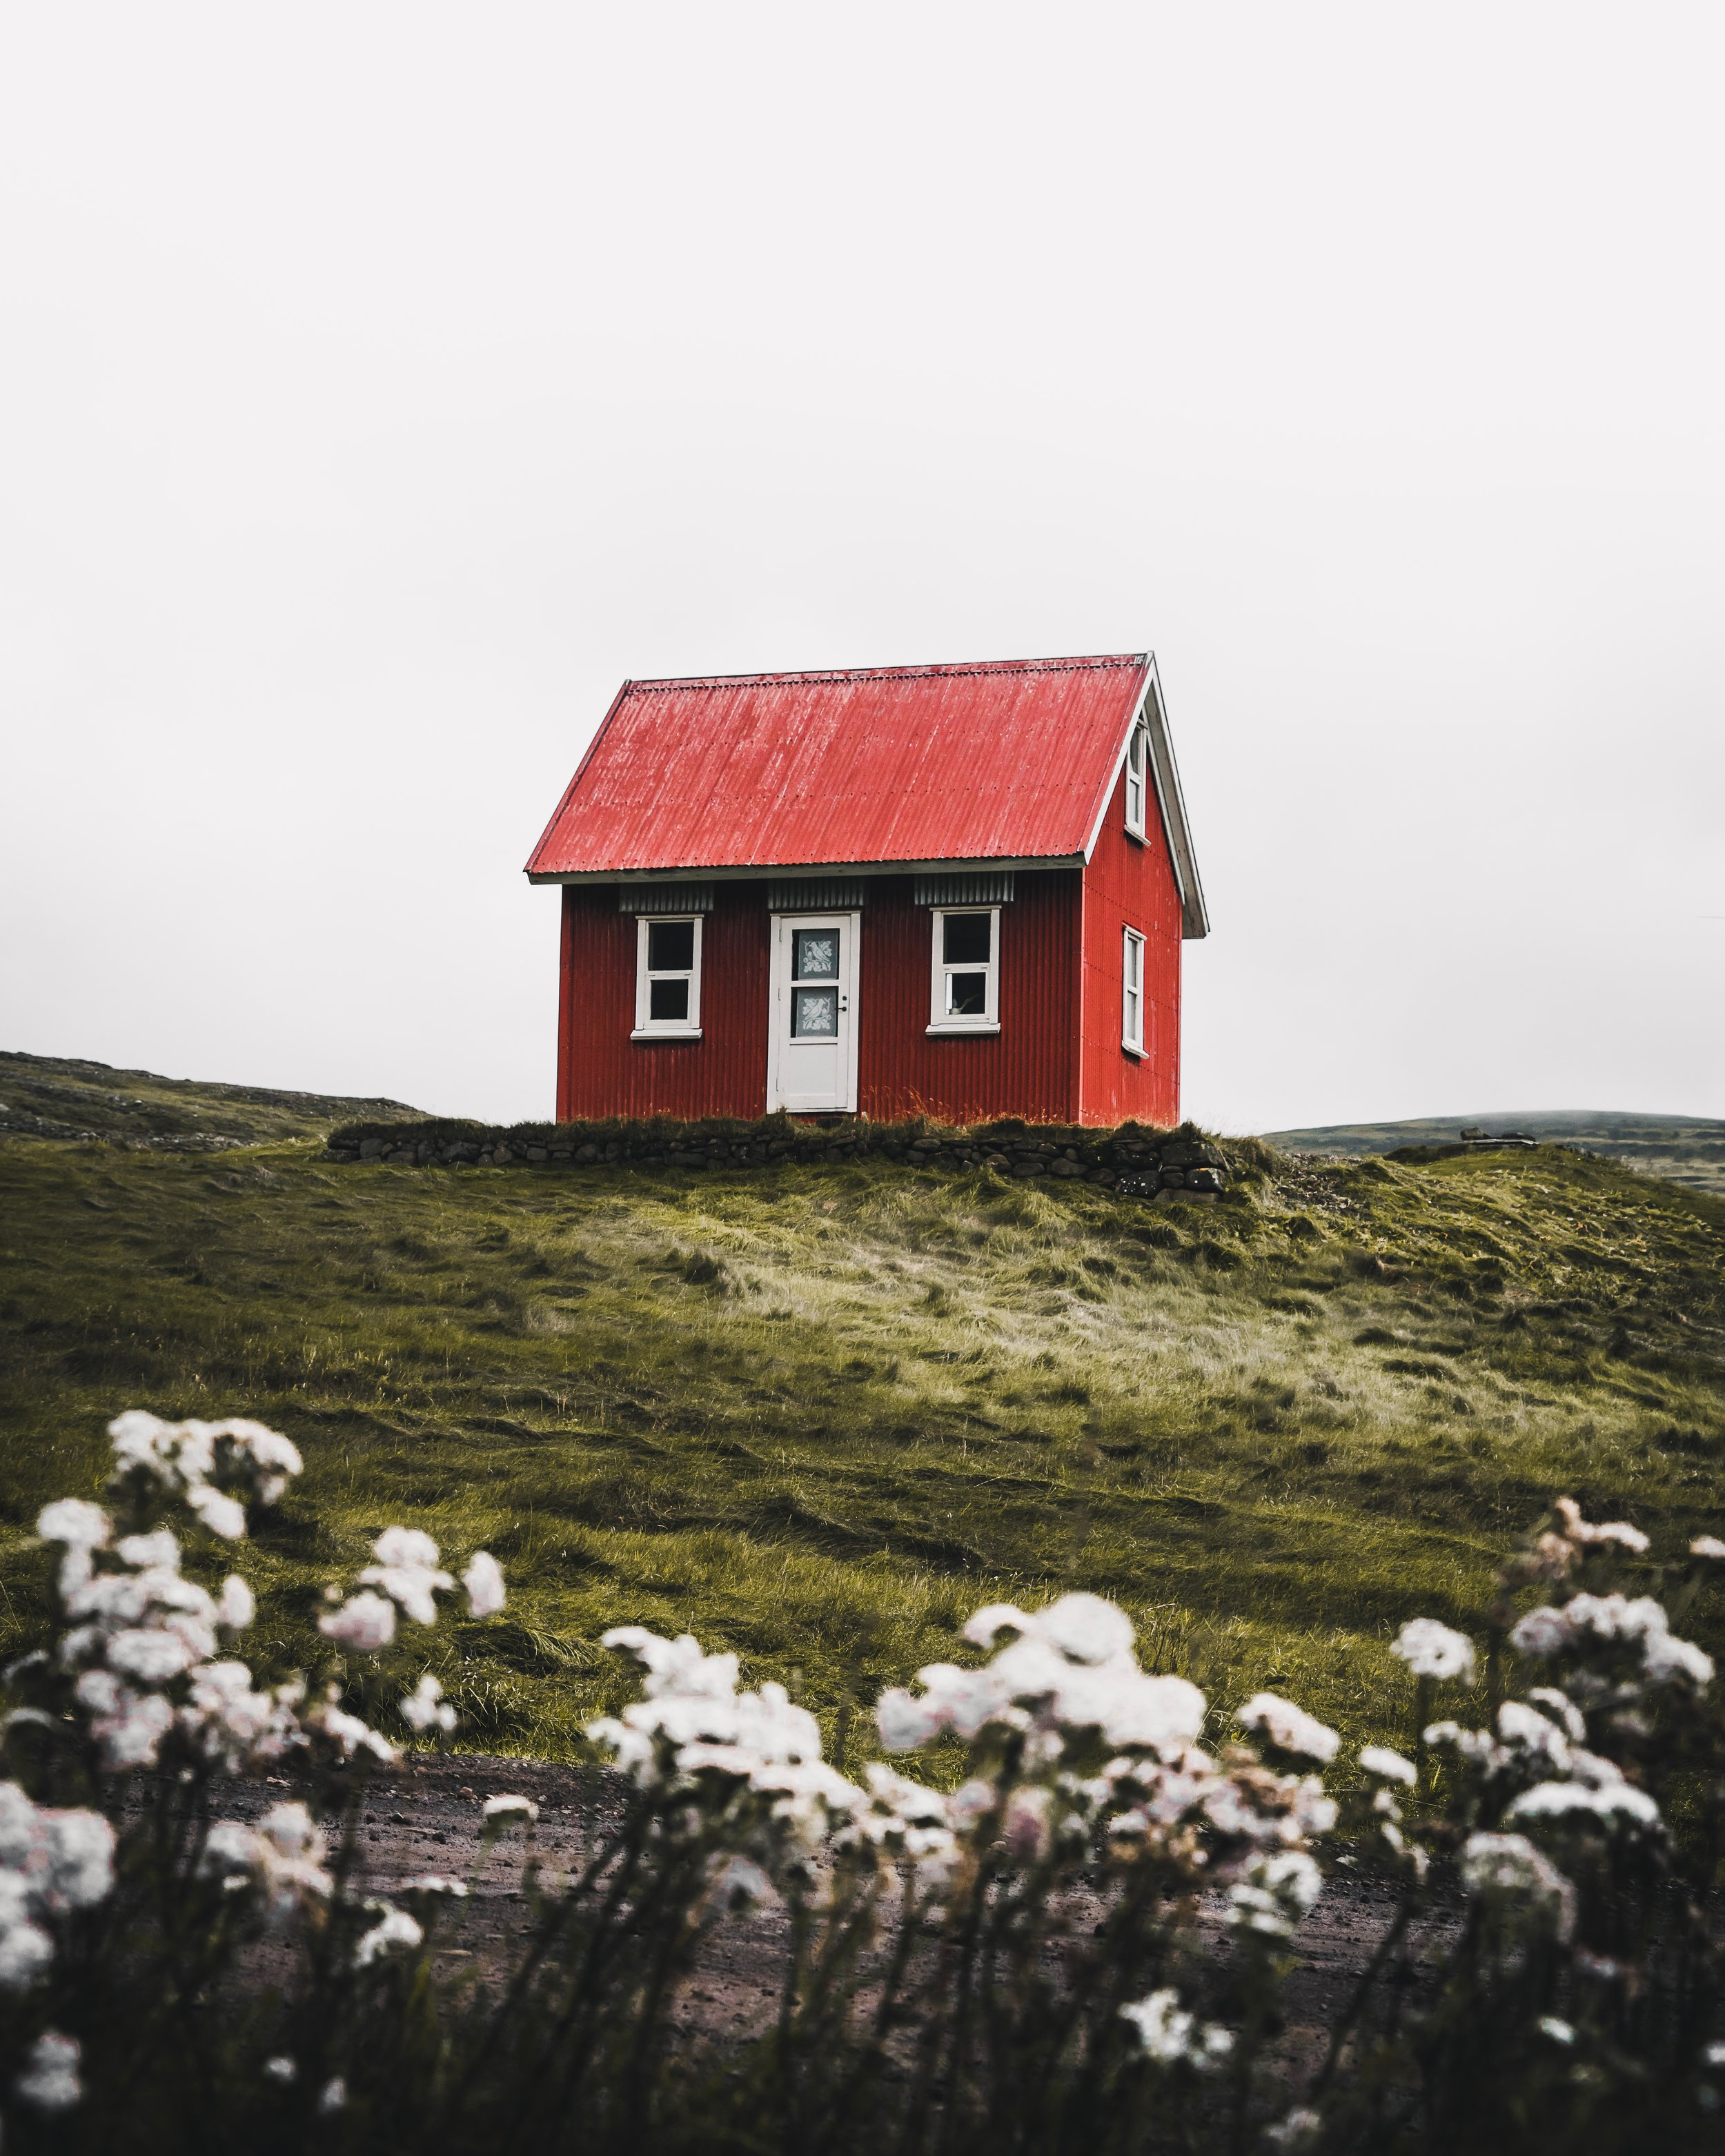 Tiny red house in a scenic green grassy field